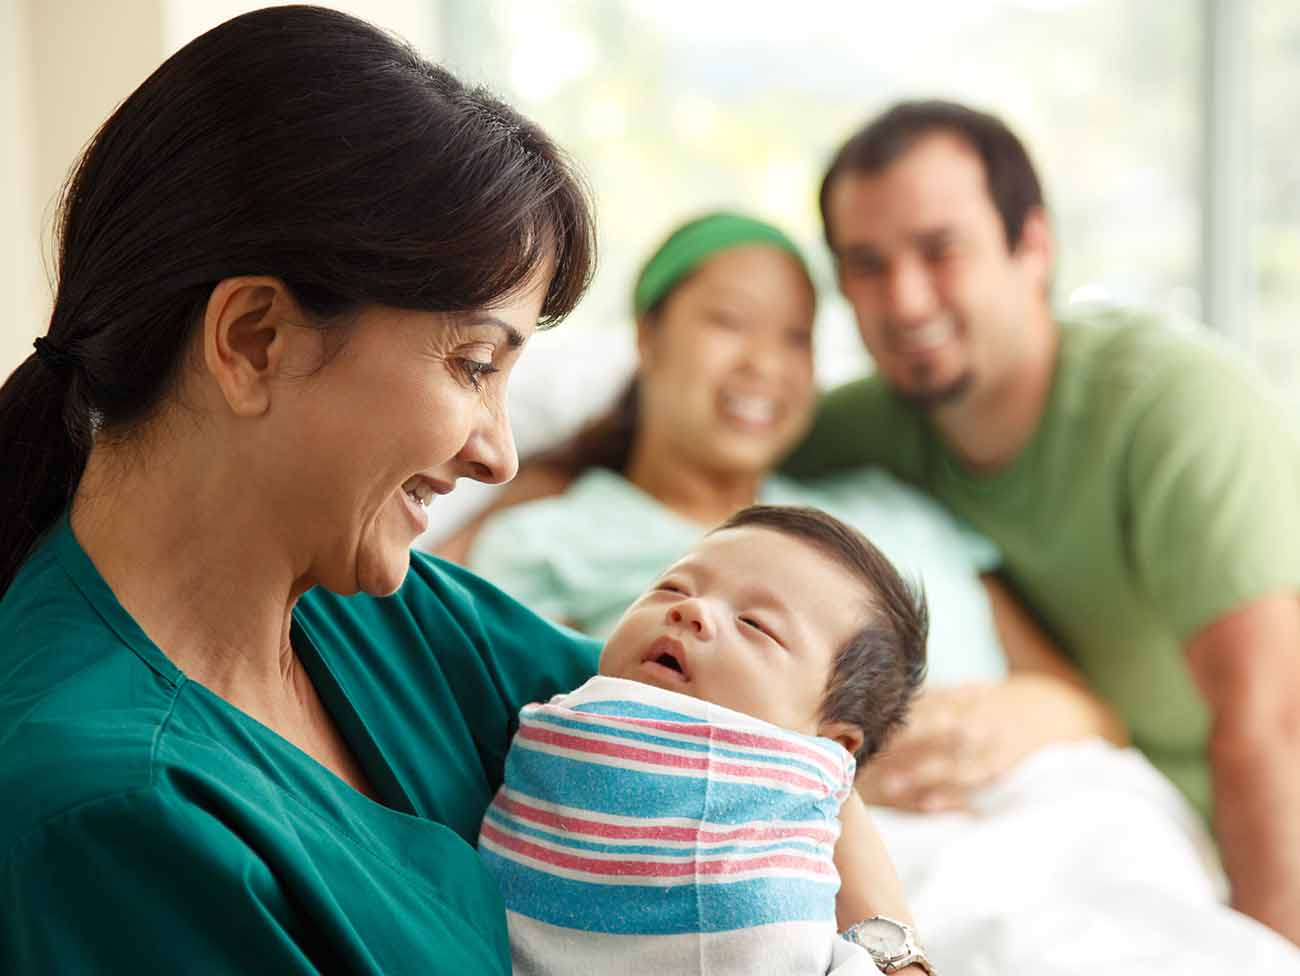 Nurse holding a newborn baby with smiling parents in the background